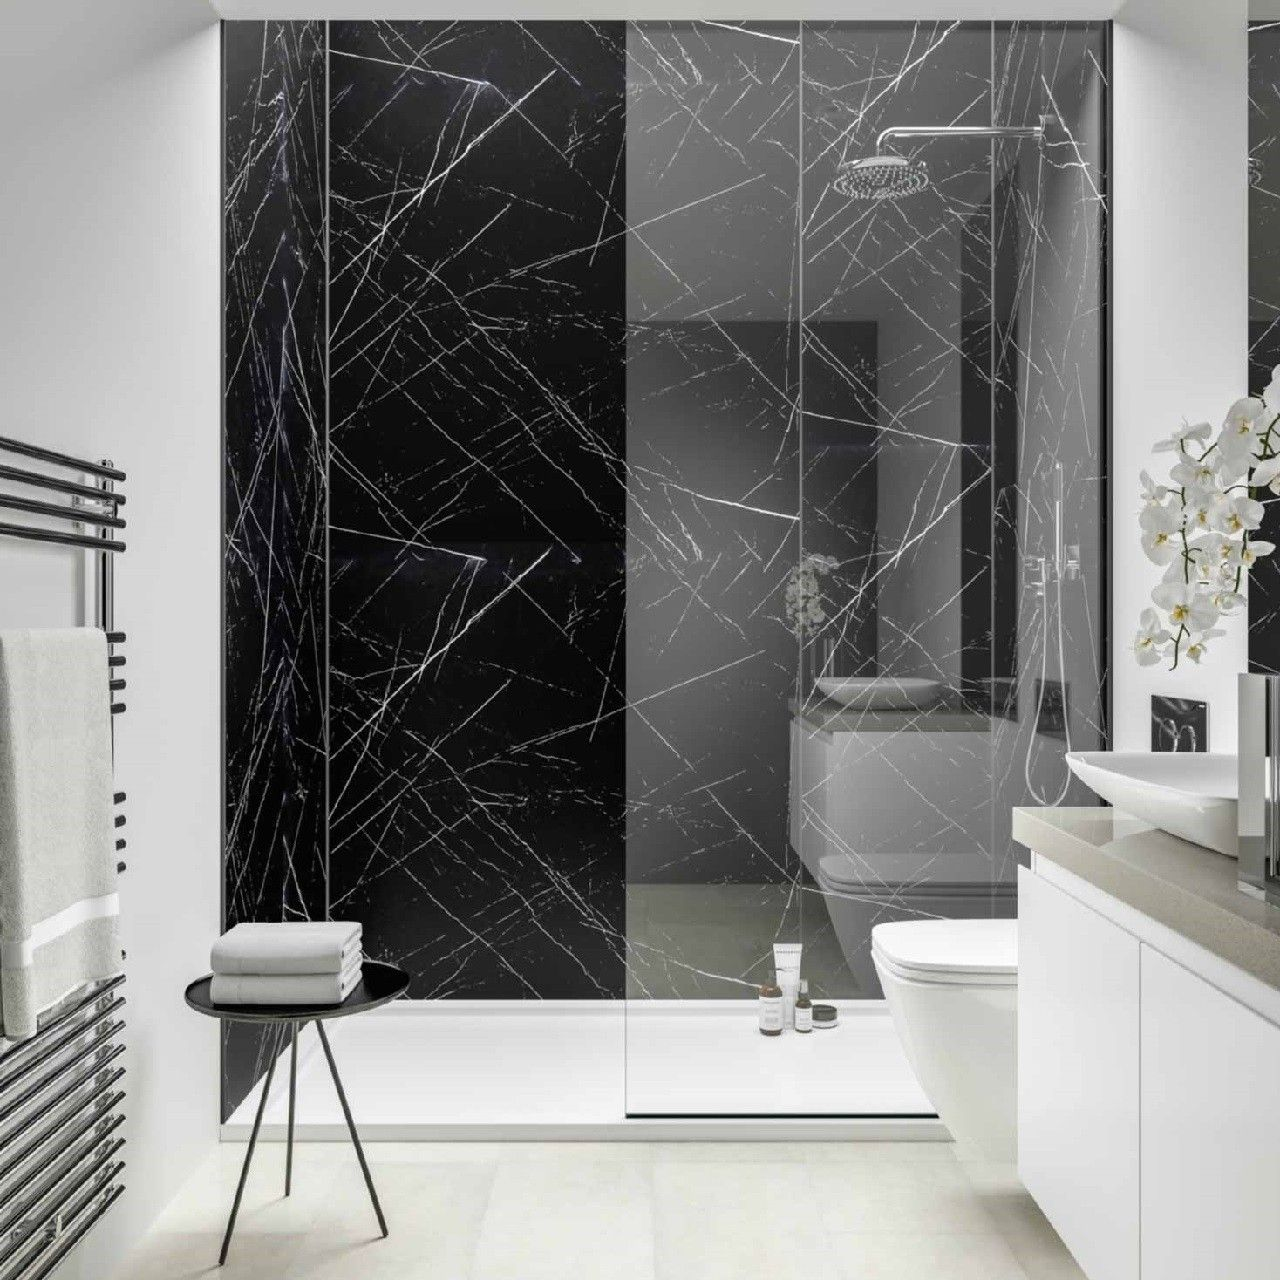 Marble Effect Wall Panels Create A Stylish Stunning Look Without The Expense Or High Maintenanc Black Marble Bathroom Marble Bathroom Designs Marble Bathroom